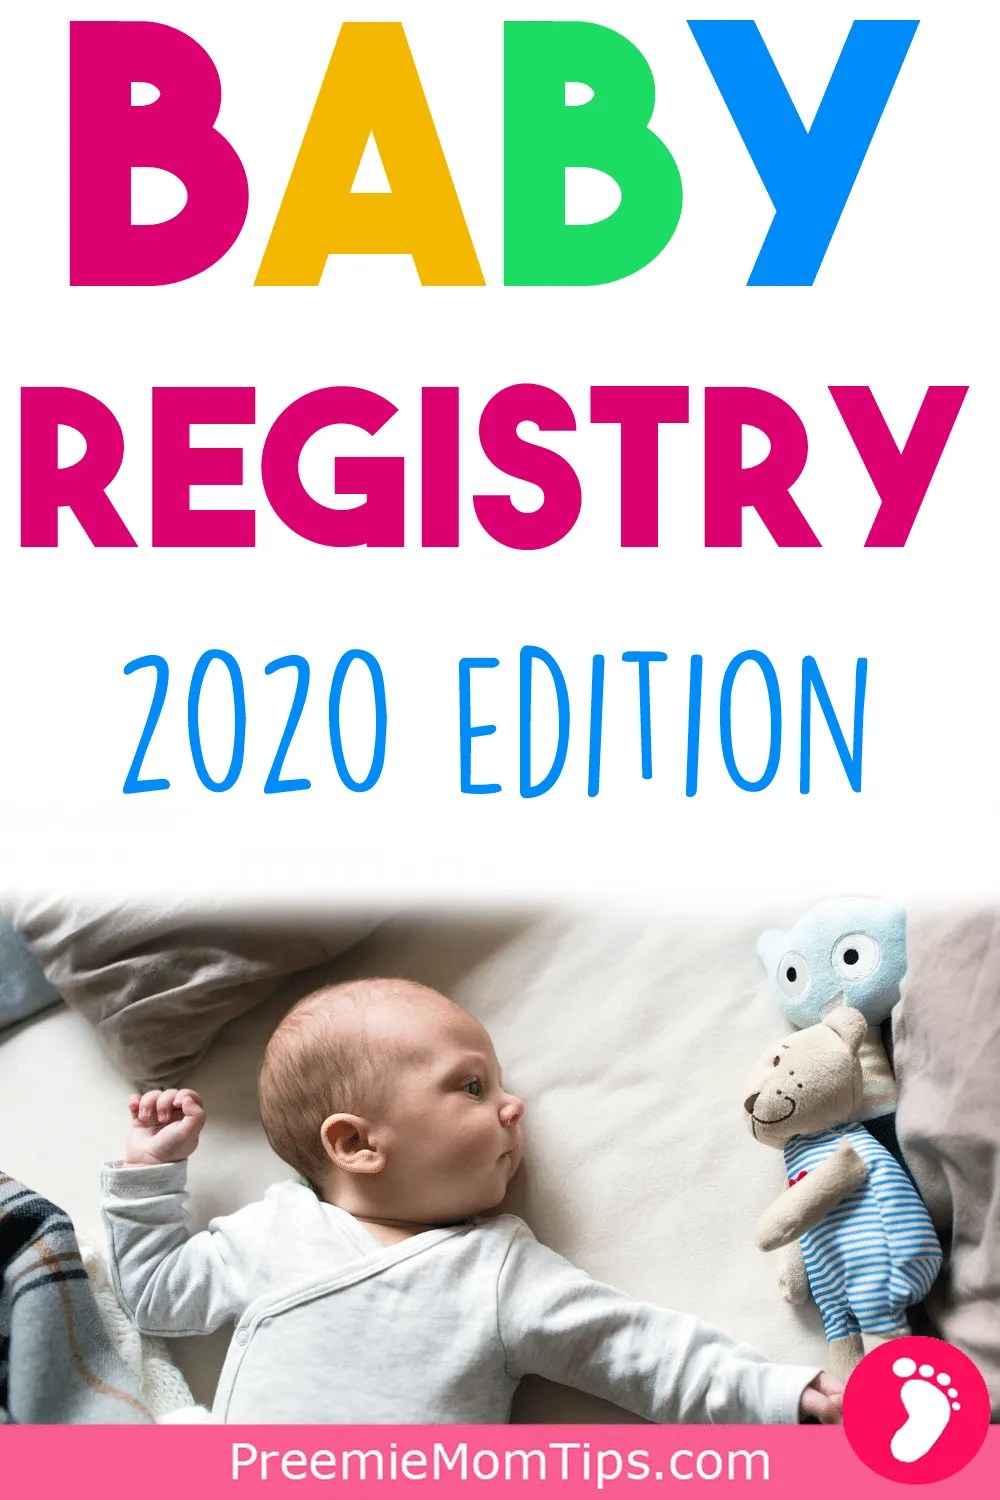 Get everything you need for your newborn baby by registering with all the right baby items! Check out this essential baby guide!